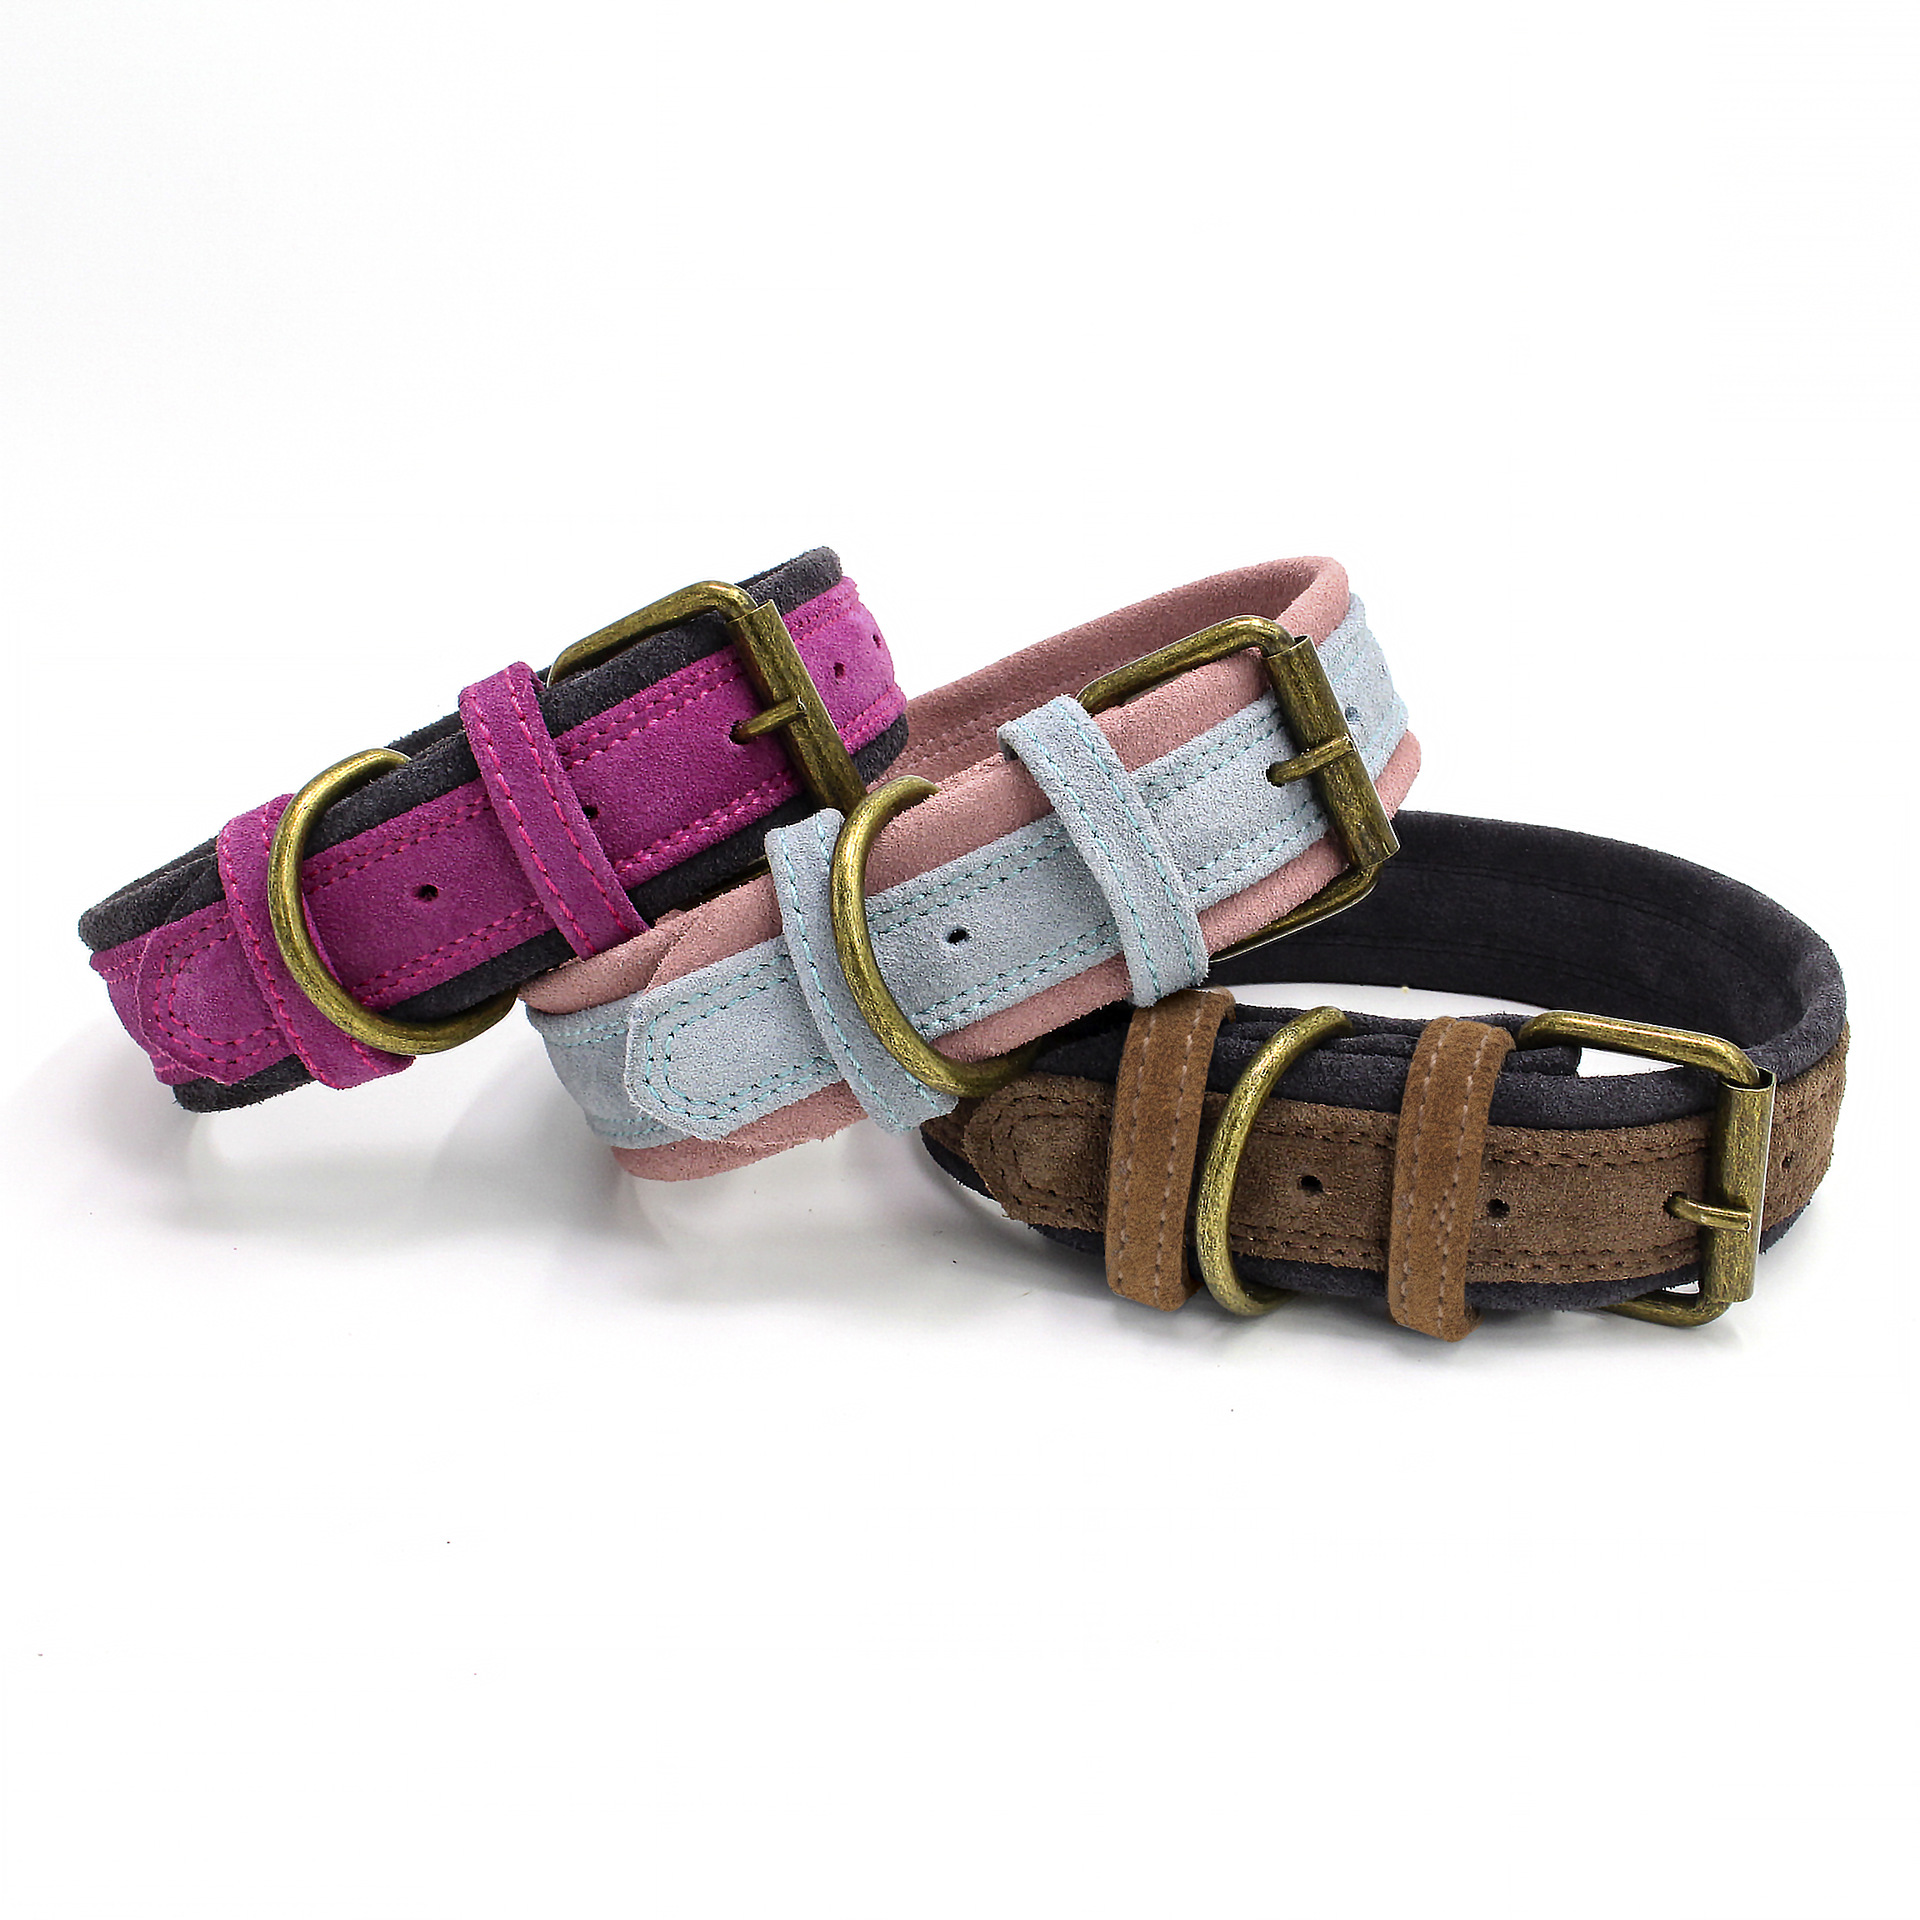 Double Layer Contrast Color Dull Polish Cowhide Dog Neck Ring Hide Substance Pet Collar In Large Dog Traction Hot Selling